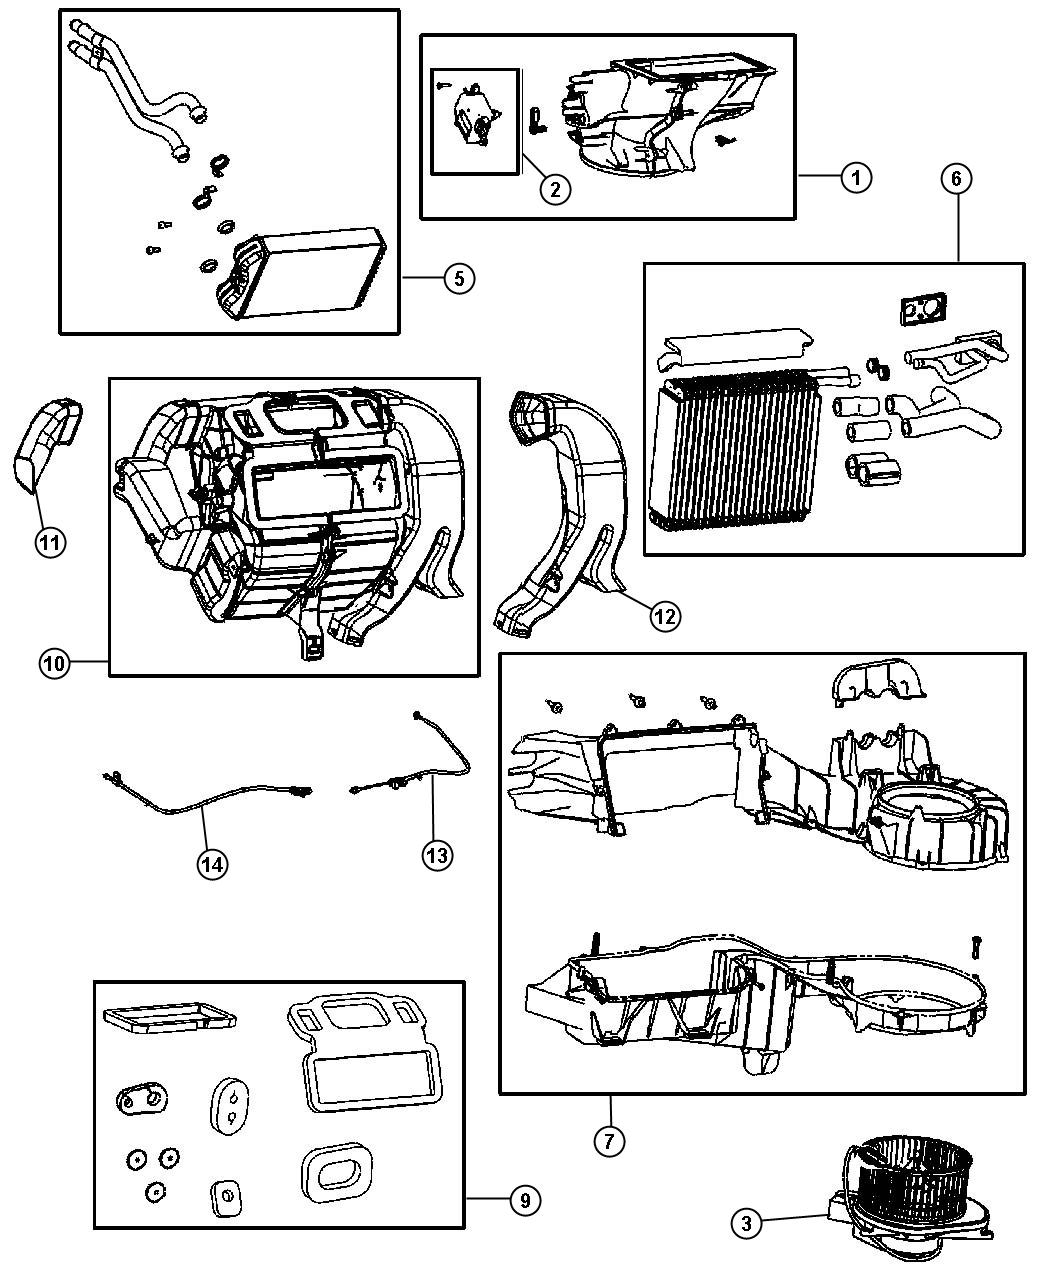 pt cruiser engine parts diagram pt image wiring similiar pt cruiser ac diagram keywords on pt cruiser engine parts diagram